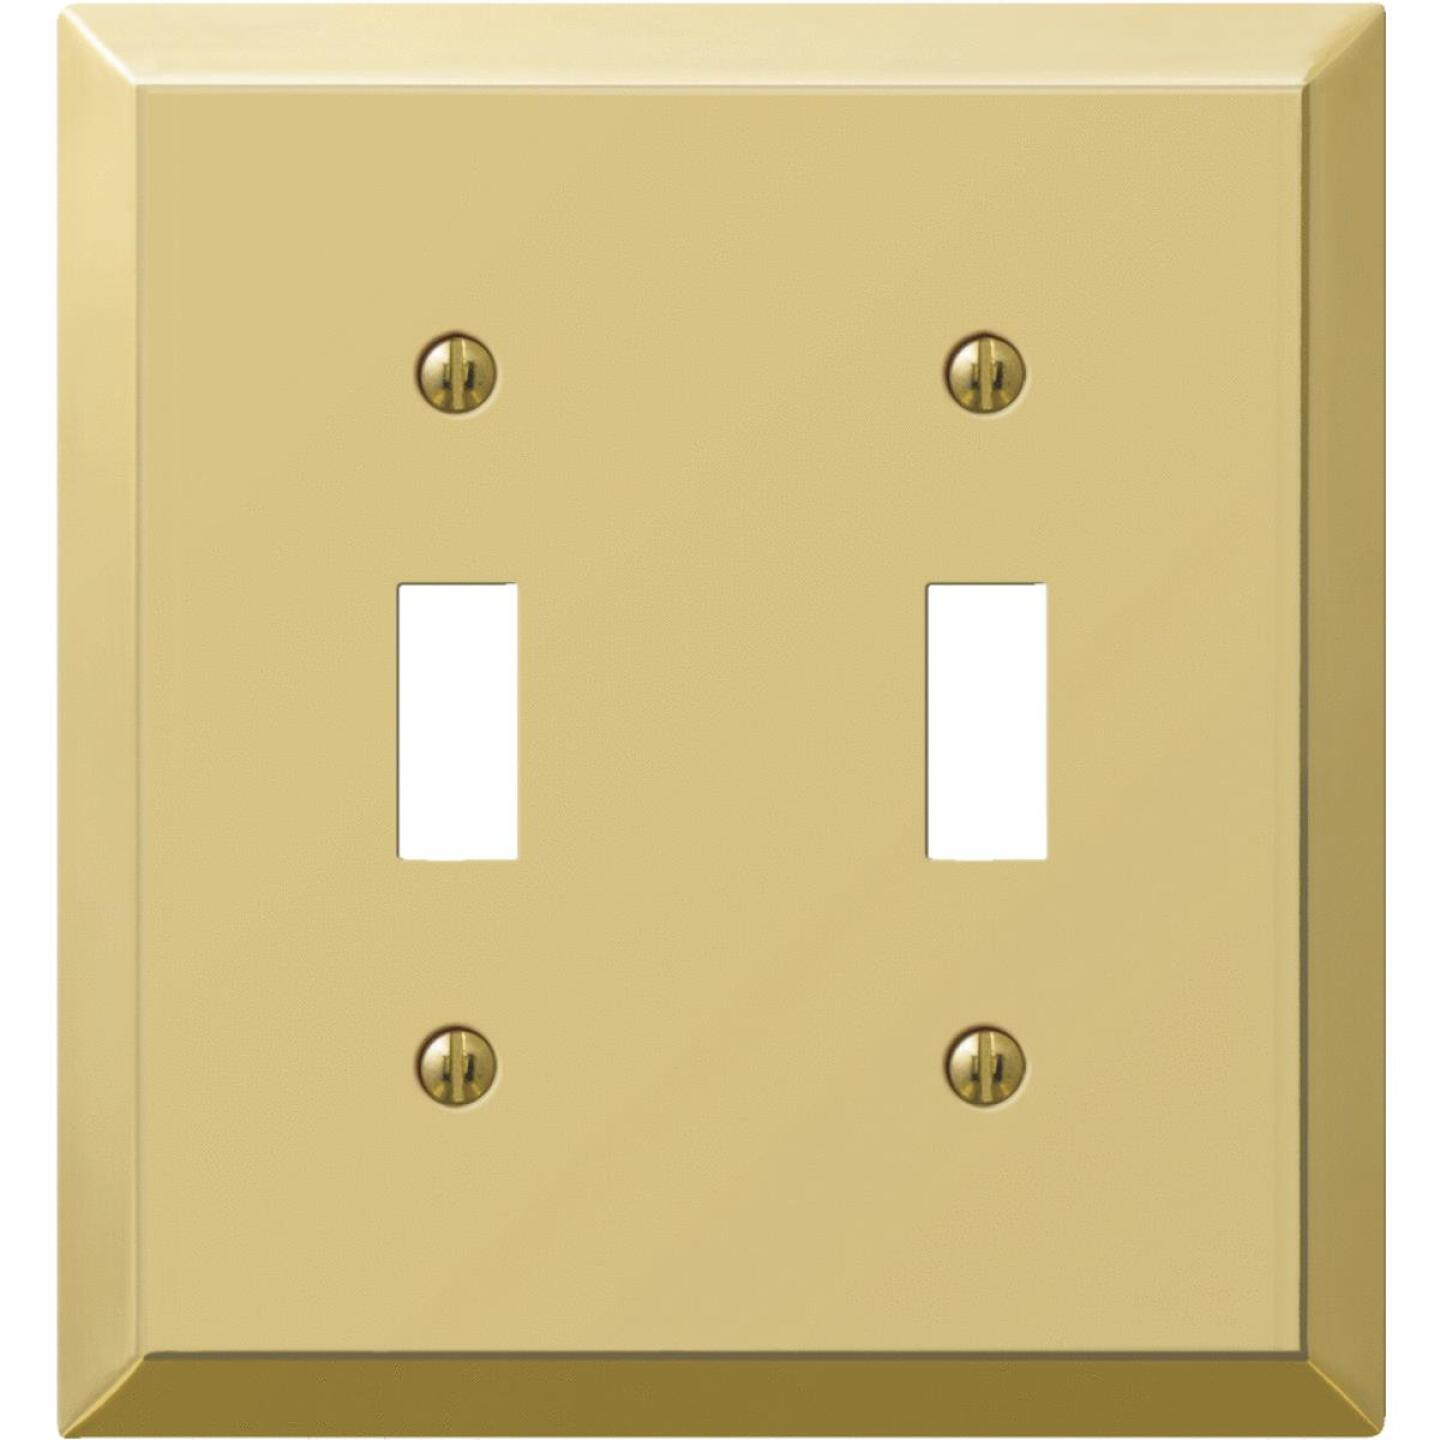 Amerelle 2-Gang Stamped Steel Toggle Switch Wall Plate, Polished Brass Image 1